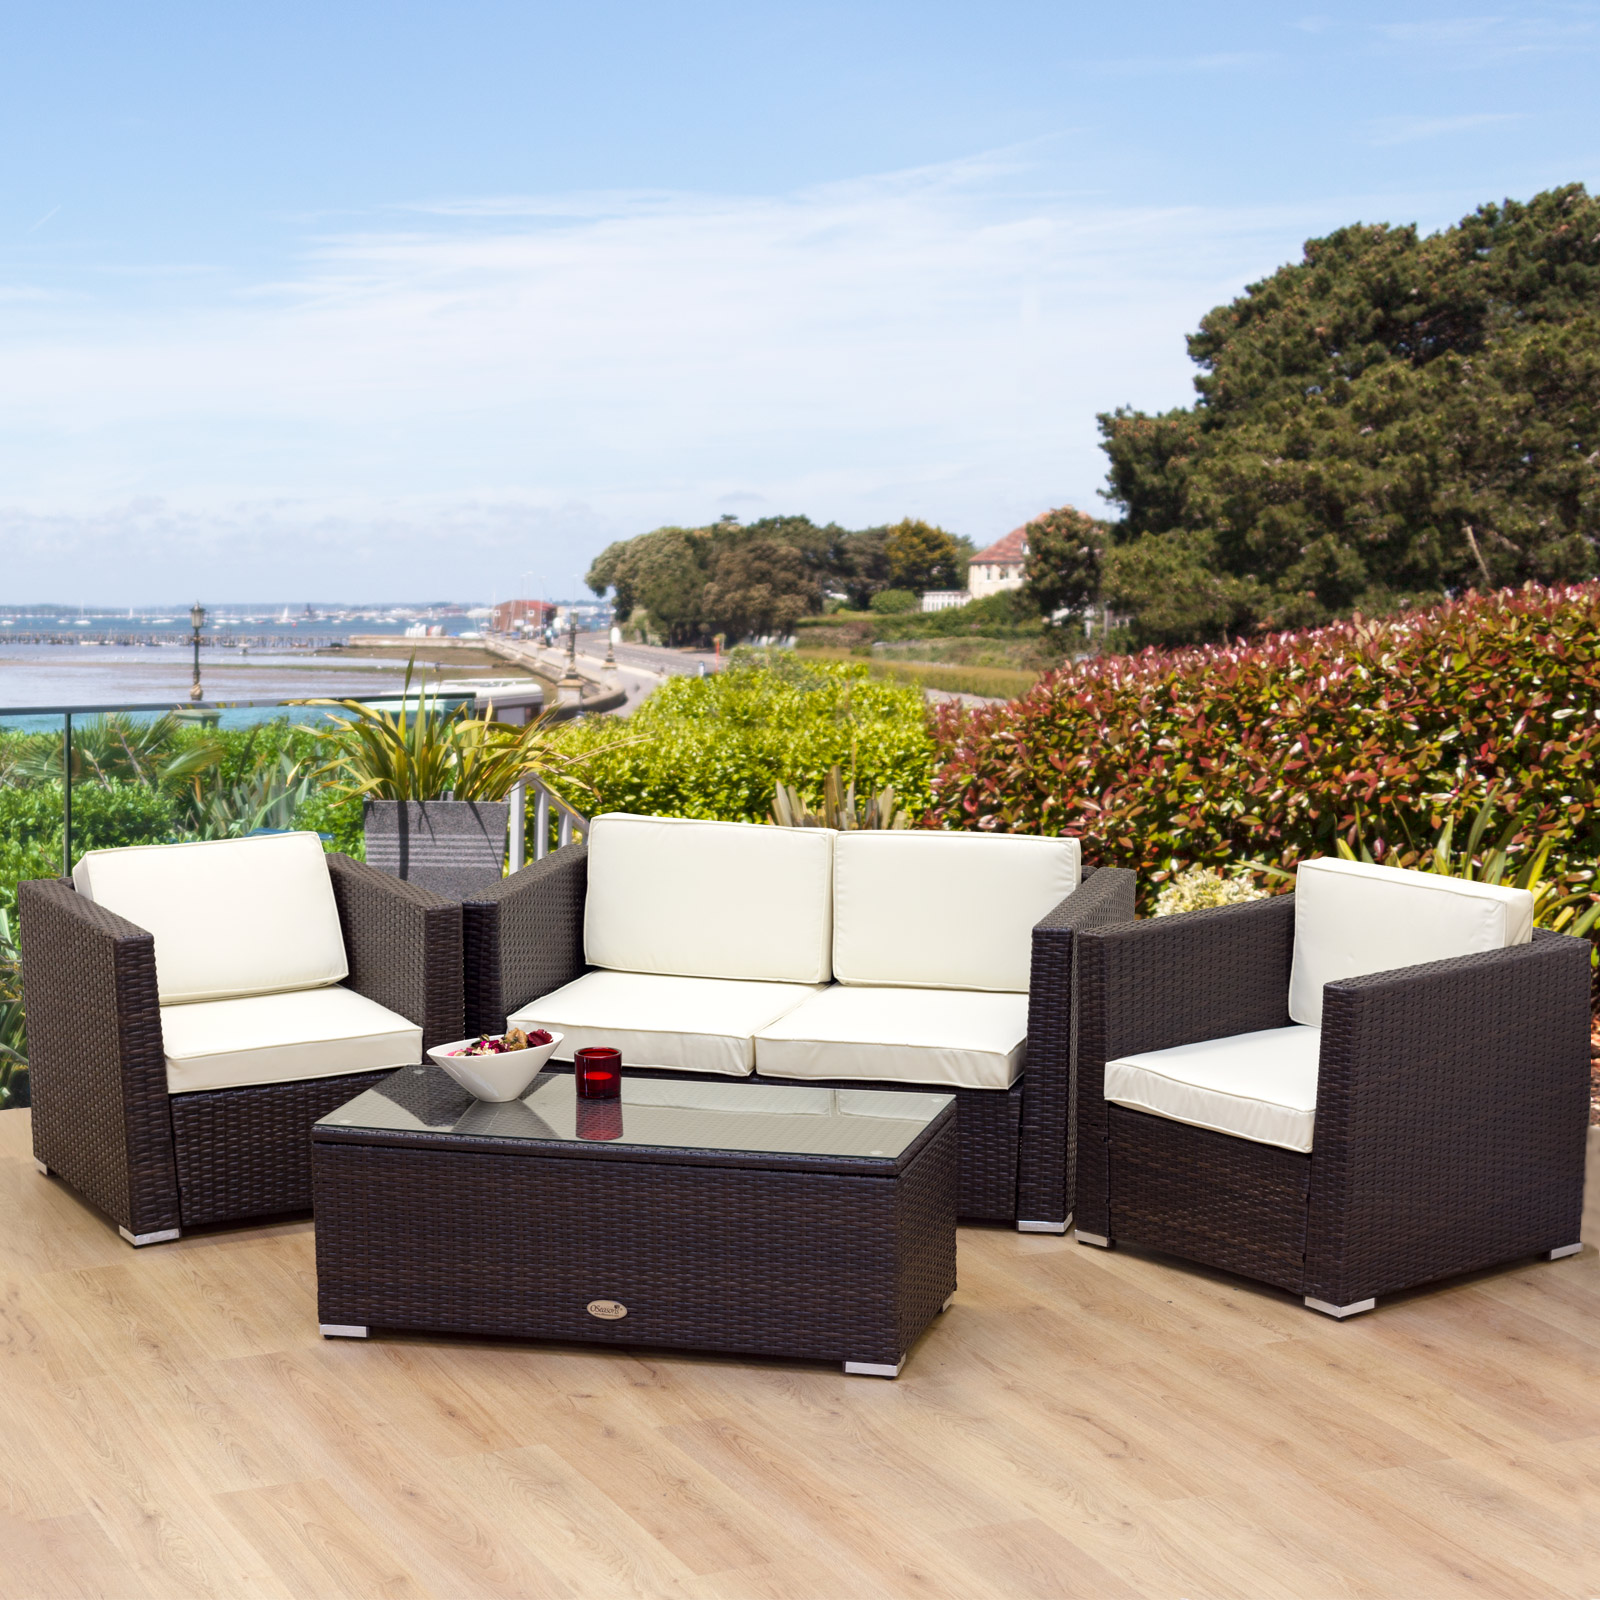 rattan garden furniture shop related products LTGZLAT